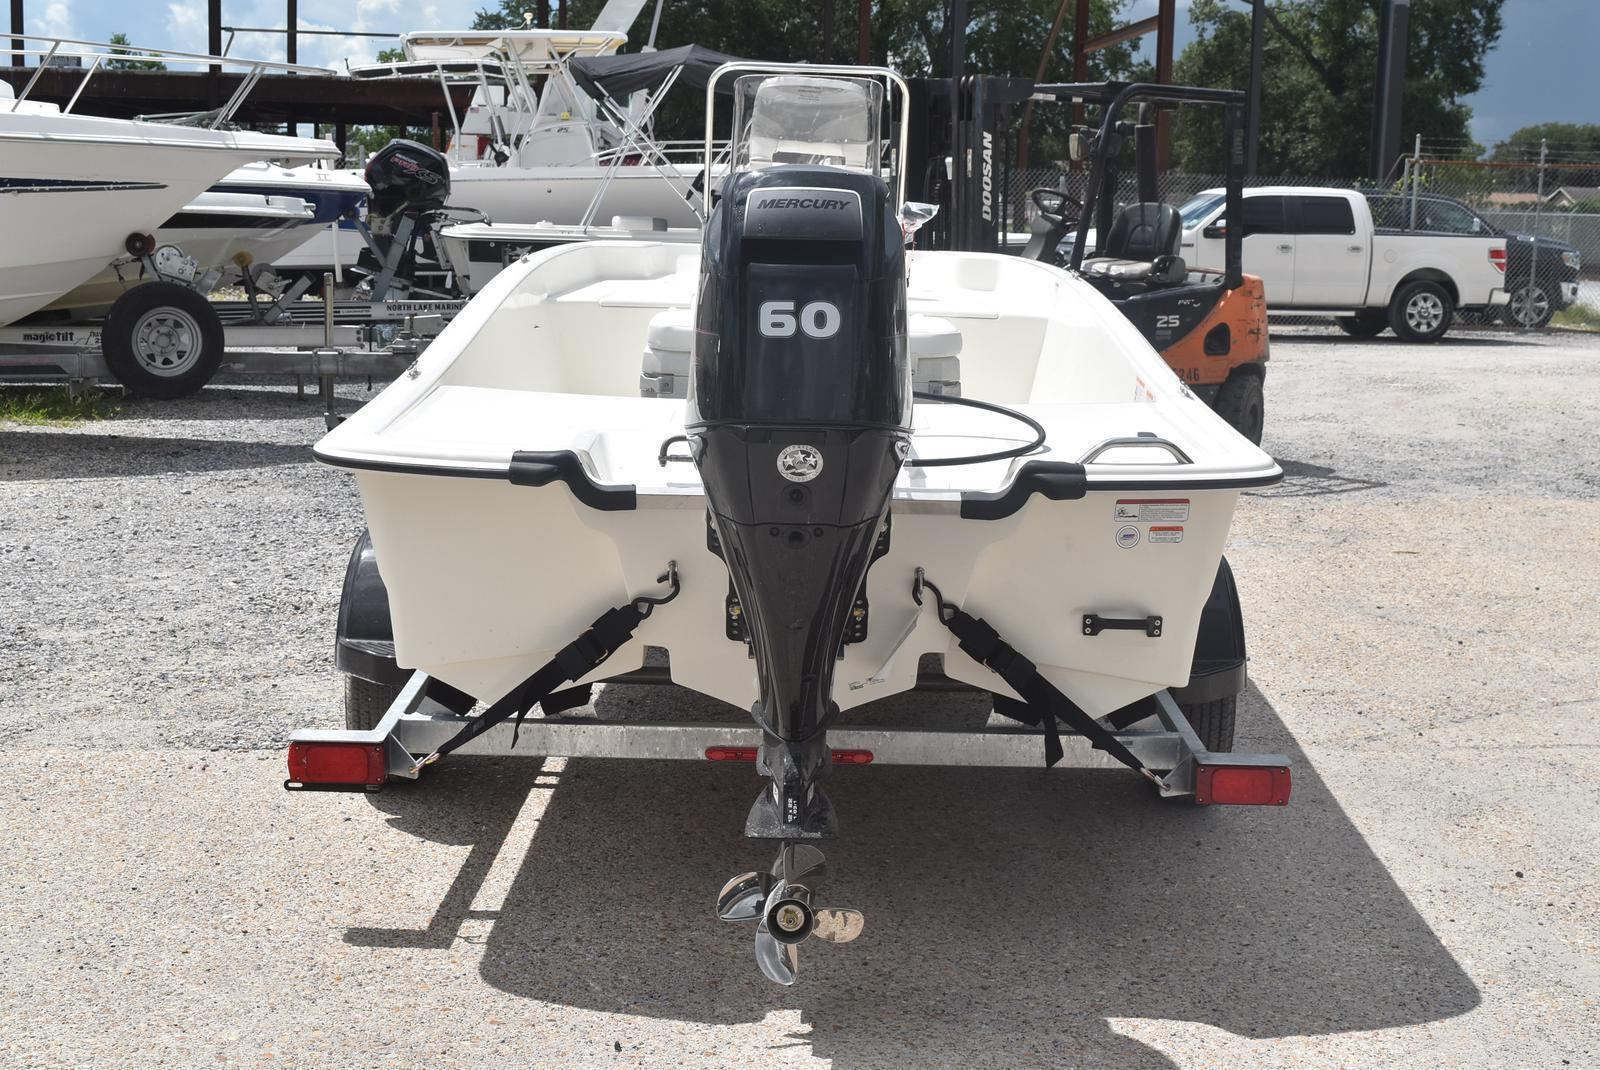 2020 Mako boat for sale, model of the boat is Pro Skiff 17, 75 ELPT & Image # 583 of 702